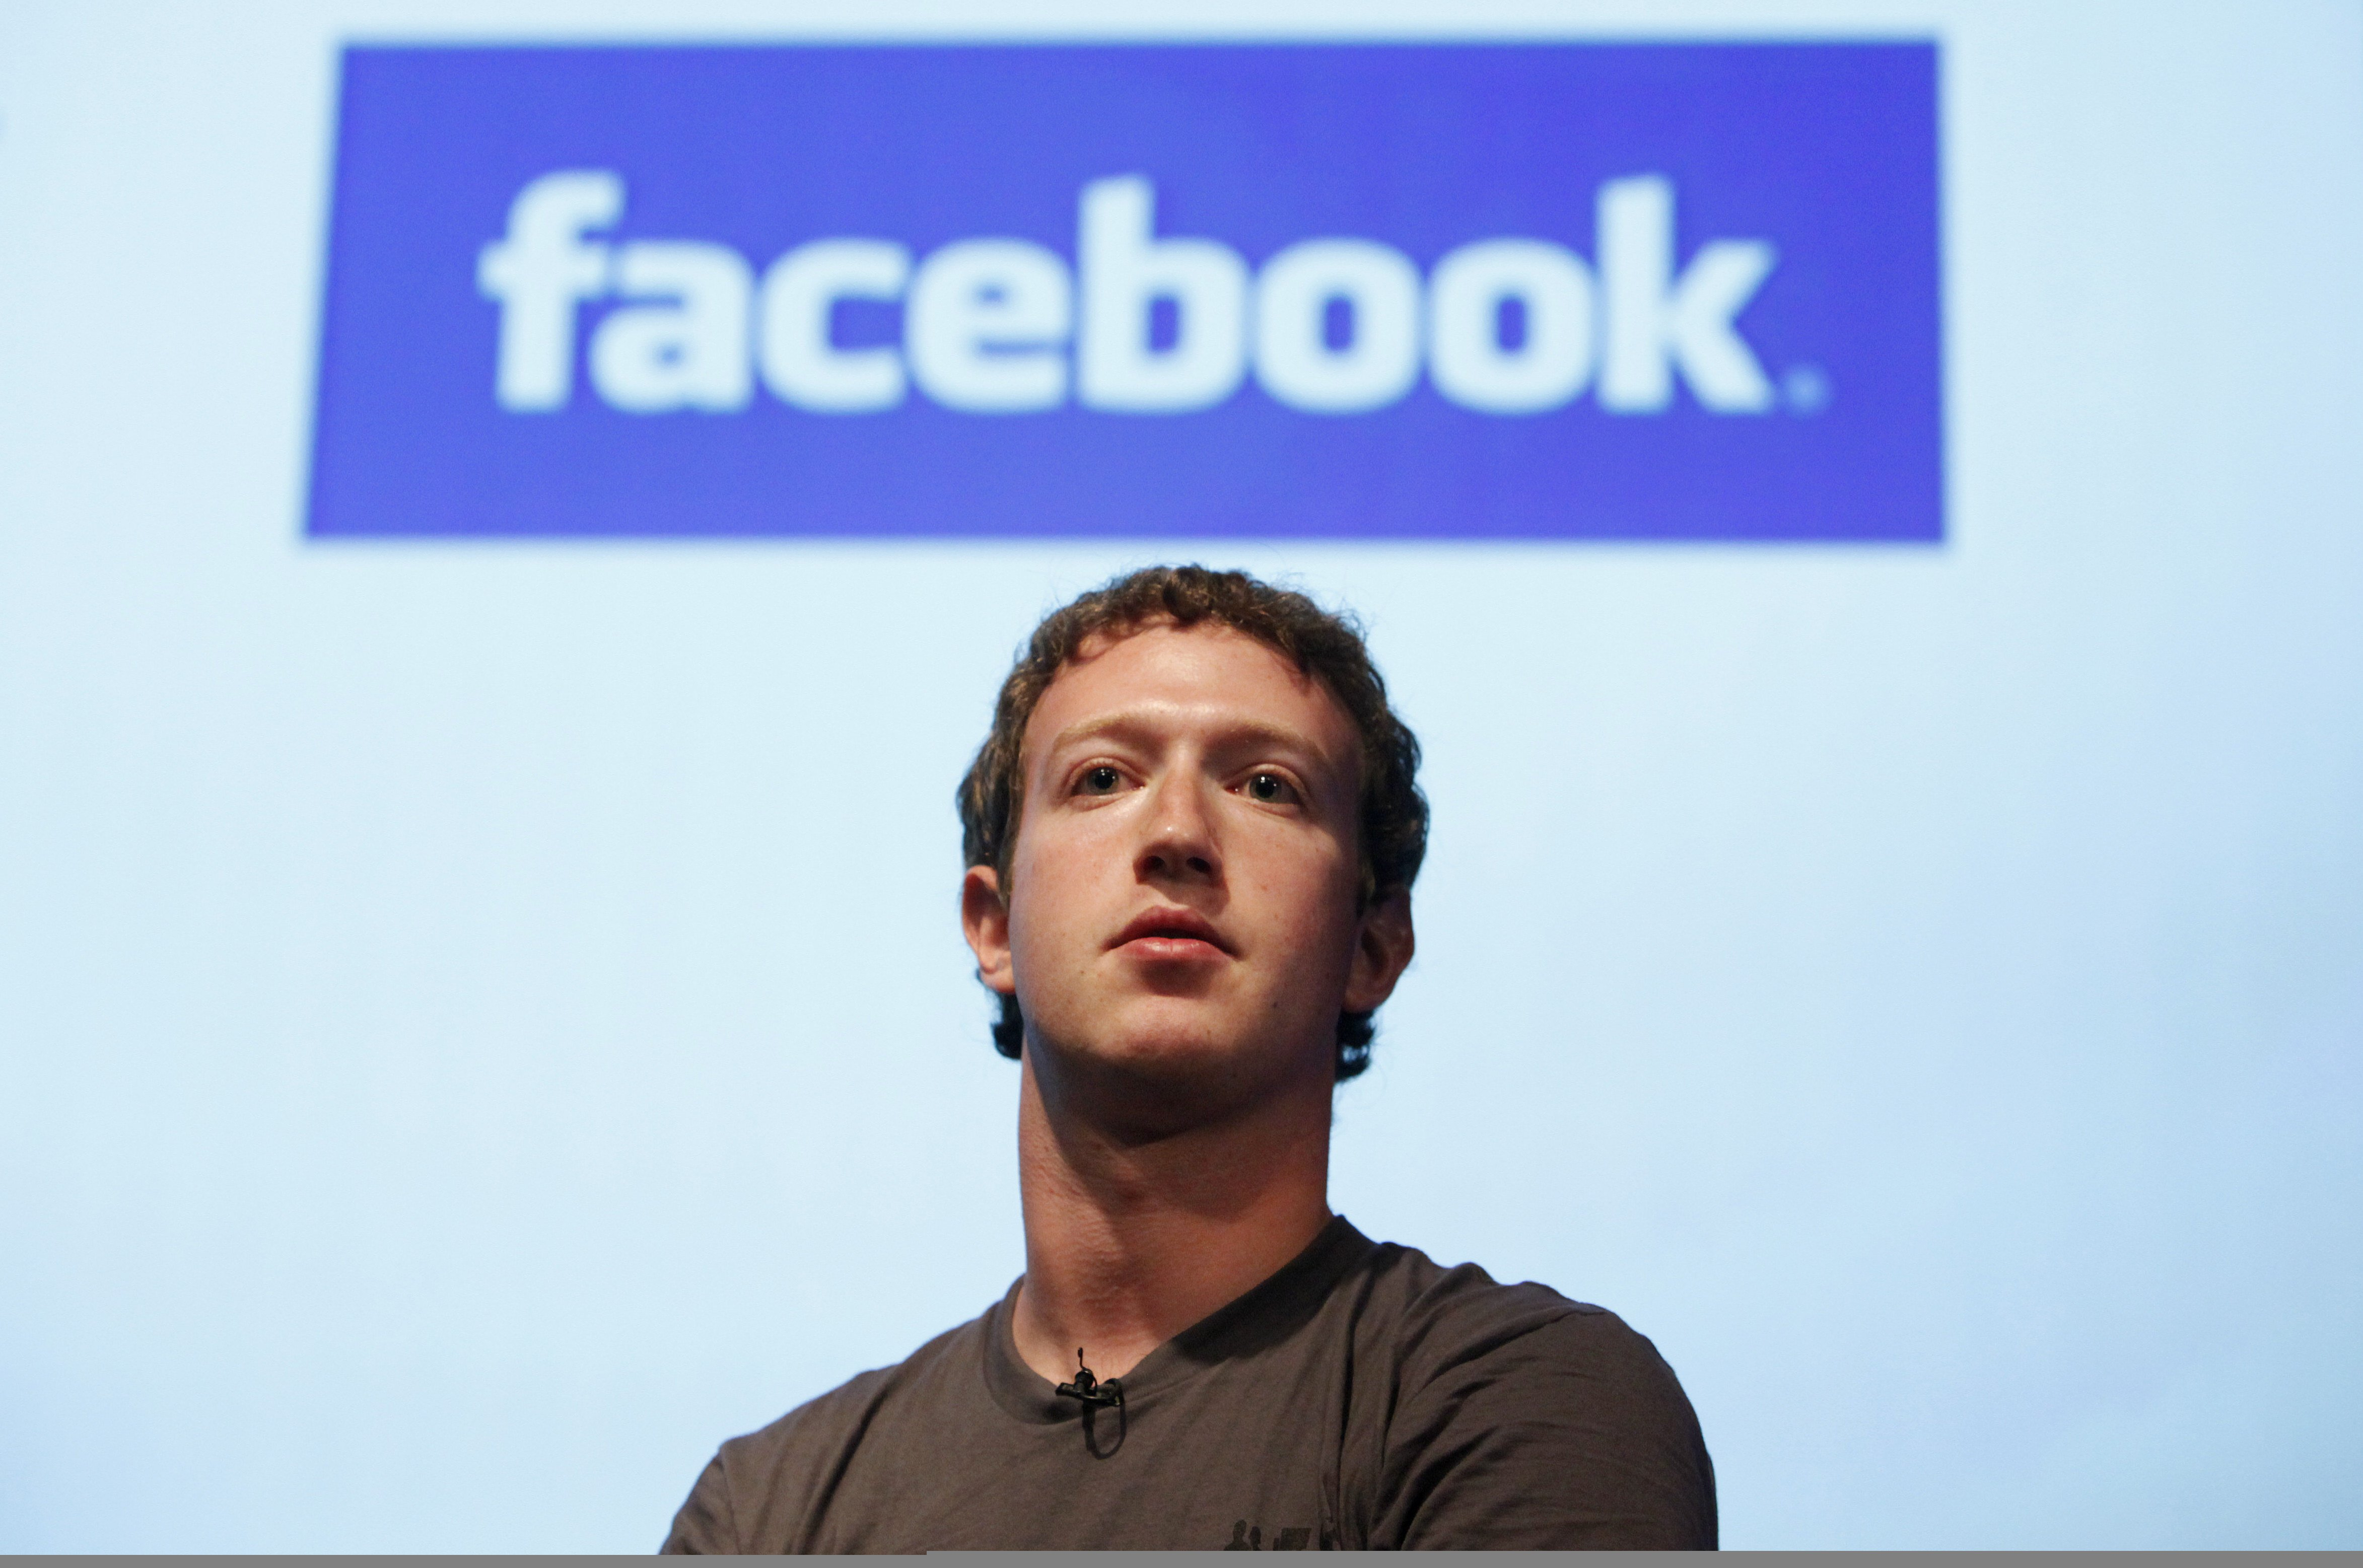 Facebook has lost nearly 50 billion in market cap since the data scandal